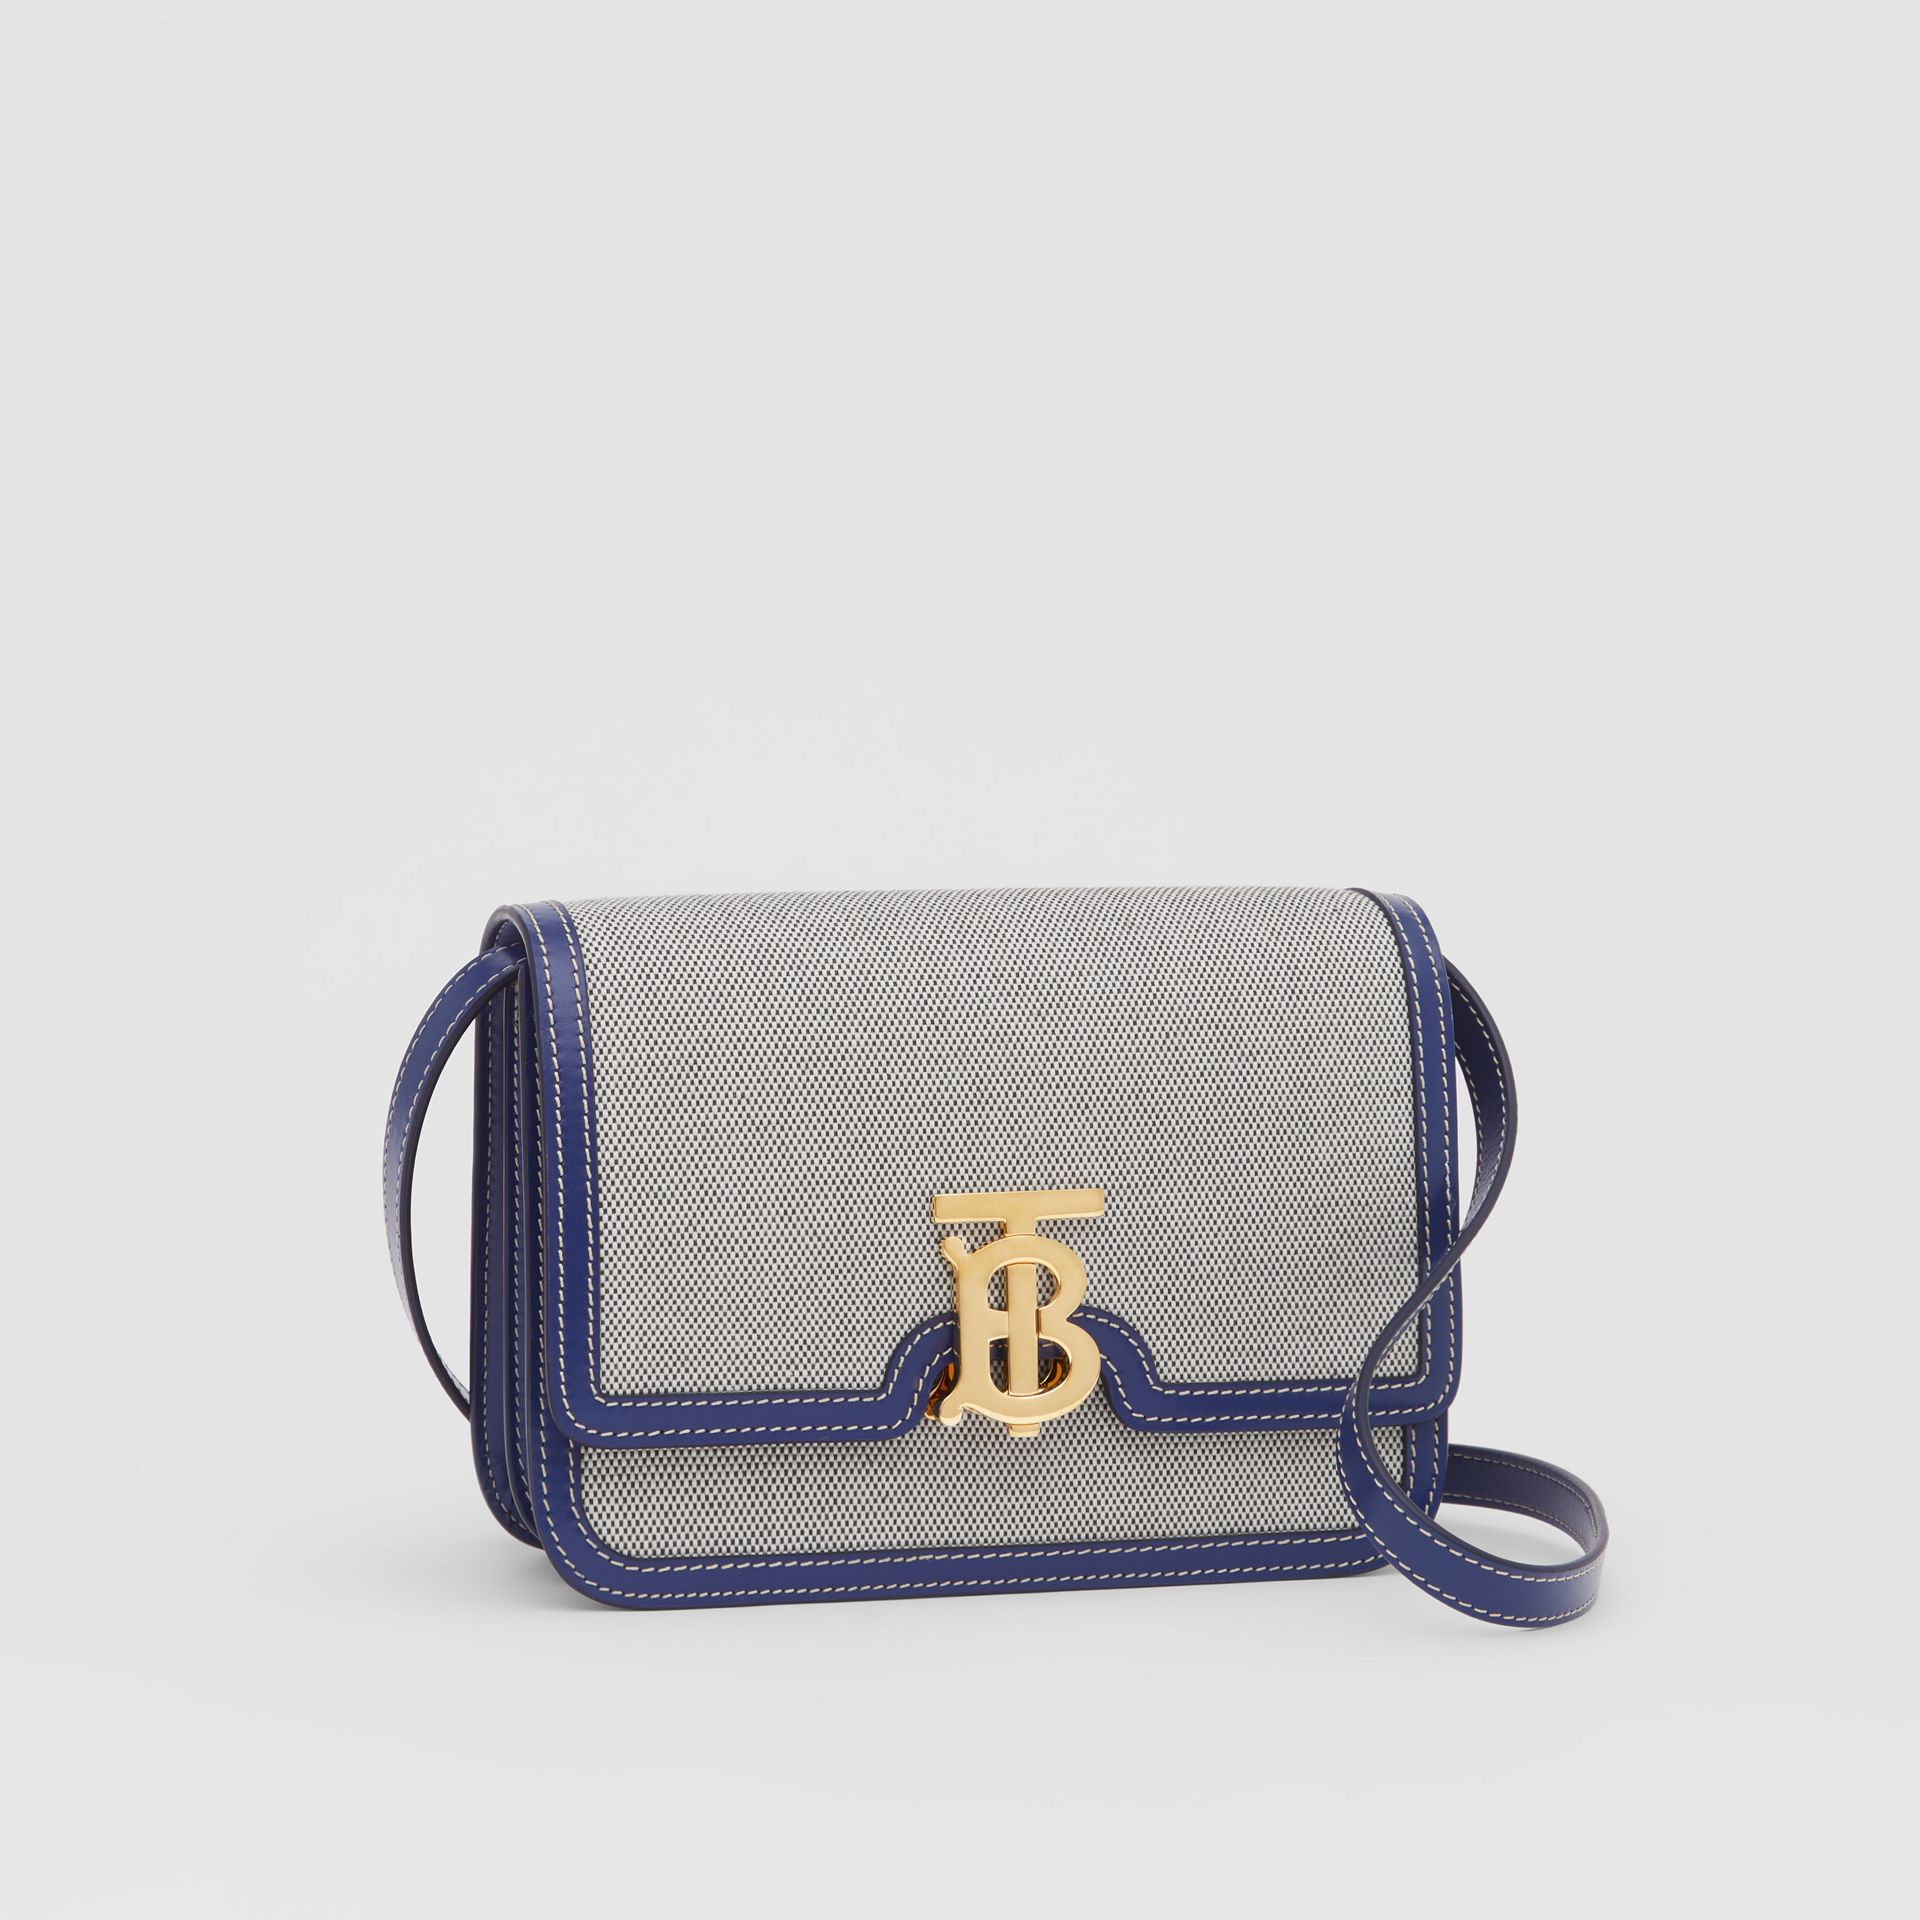 Small Two-tone Canvas and Leather TB Bag in Ink Navy - Women | Burberry - gallery image 6